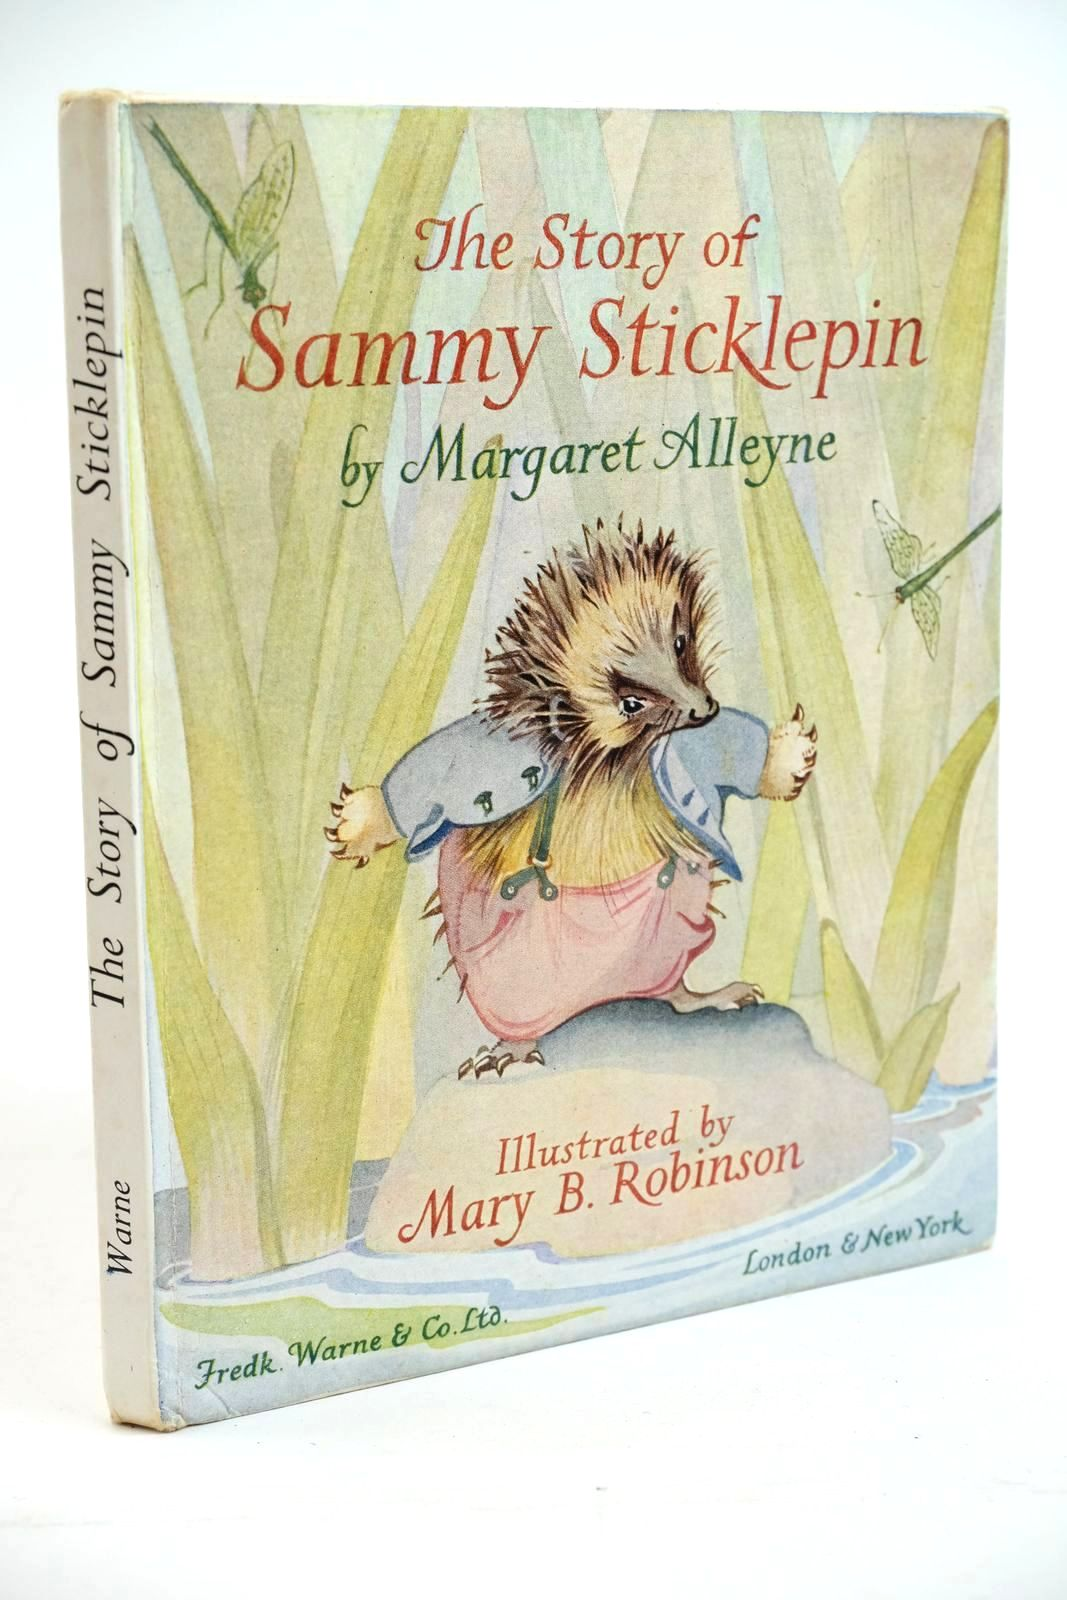 Photo of THE STORY OF SAMMY STICKLEPIN written by Alleyne, Margaret illustrated by Robinson, Mary published by Frederick Warne & Co Ltd. (STOCK CODE: 1321527)  for sale by Stella & Rose's Books